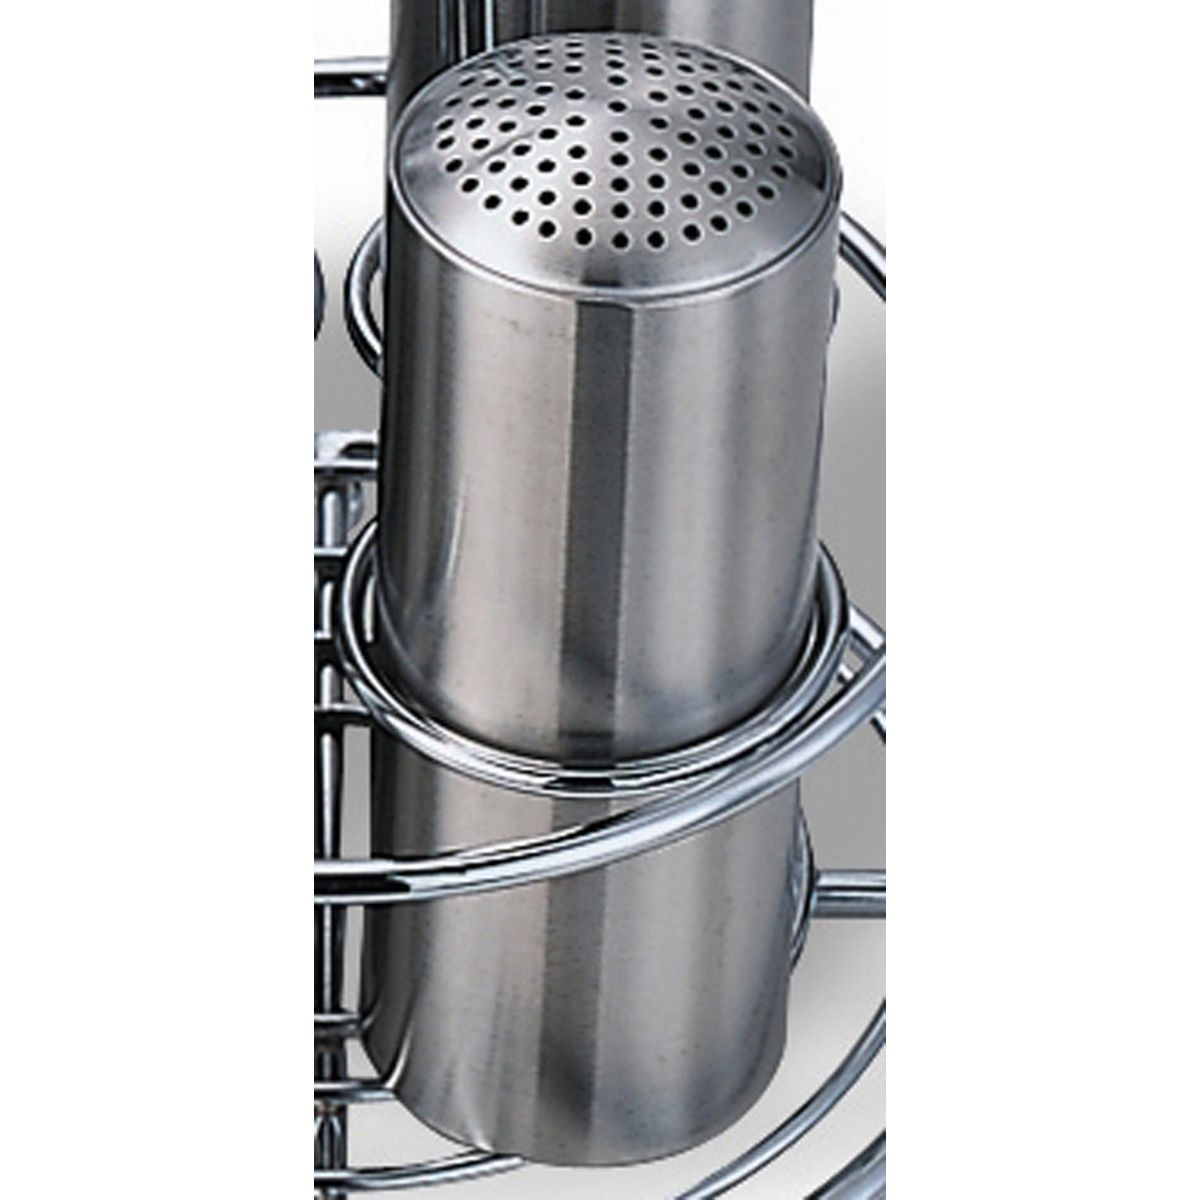 Service Ideas STCMULTI Stainless Steel Multi-Hole Condiment Shaker